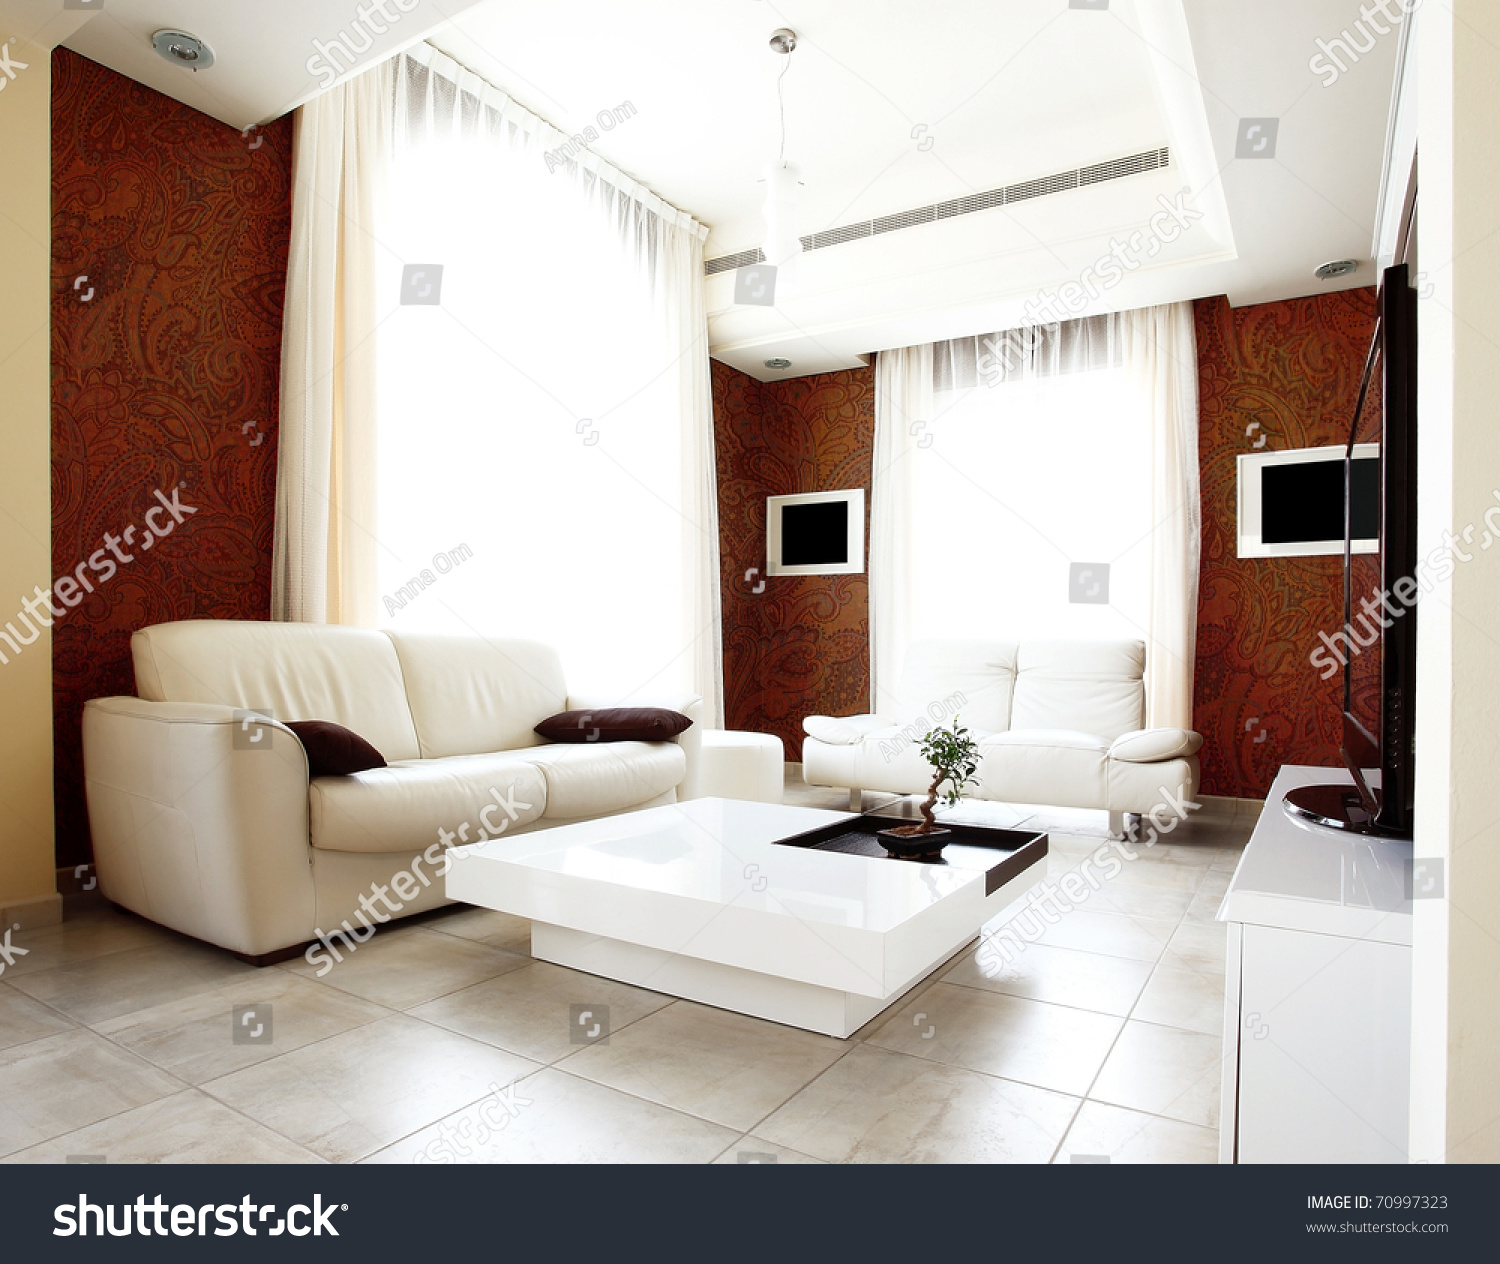 Luxury apartment stylish modern interior design stock for Modern luxury apartment design